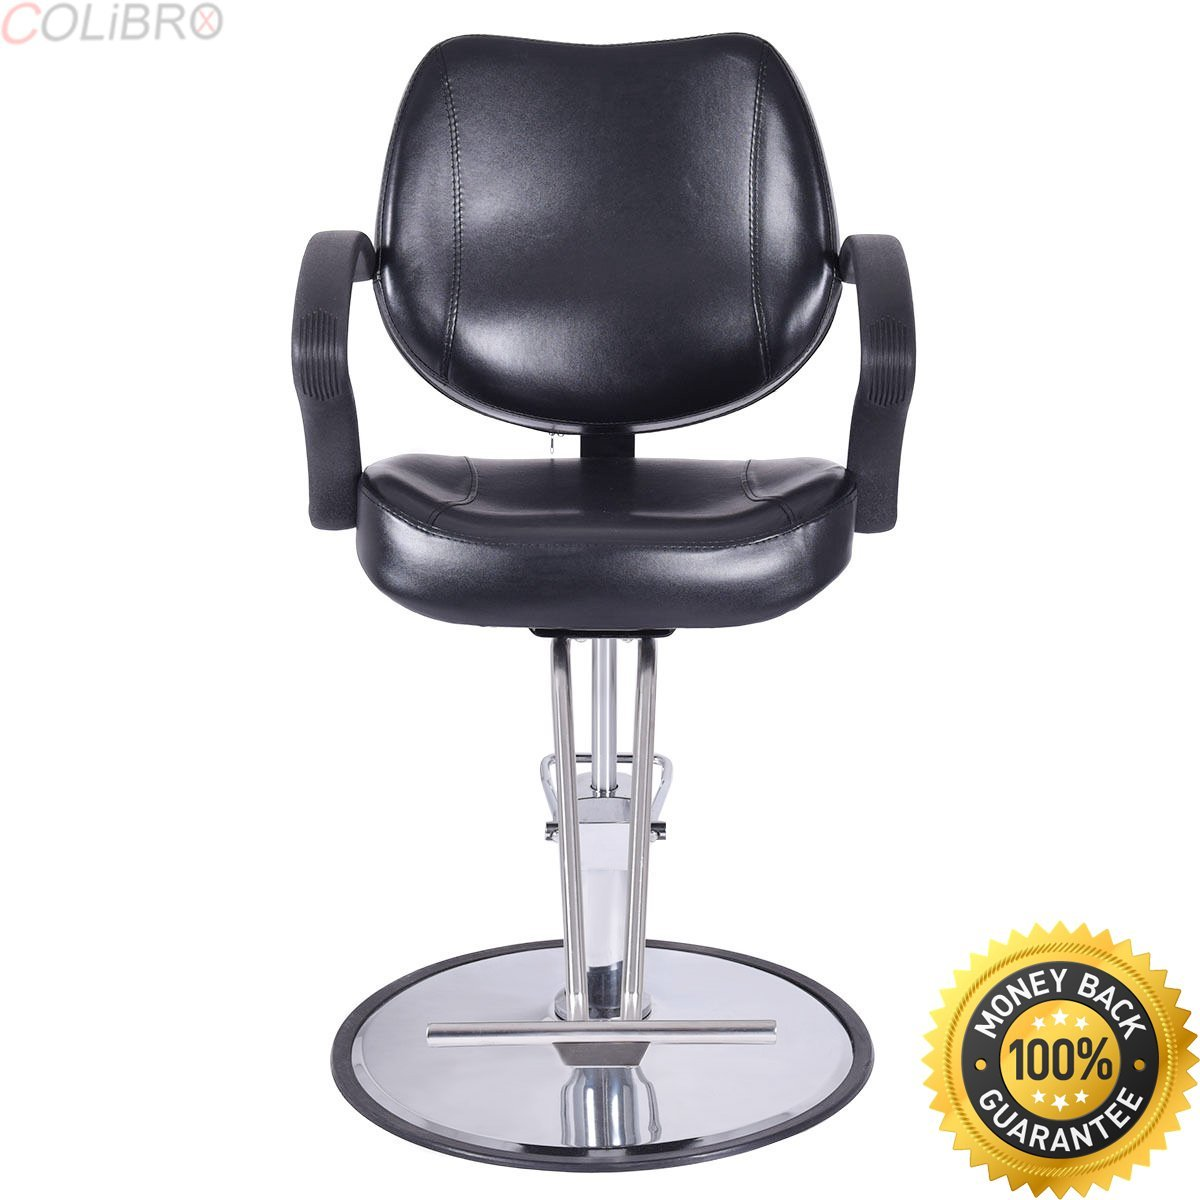 COLIBROX--Classic Hydraulic Barber Chair Salon Beauty Spa Shampoo Hair Styling Shampoo New. all purpose salon chair. all purpose salon chair with headrest. best salon chairs for cheap.